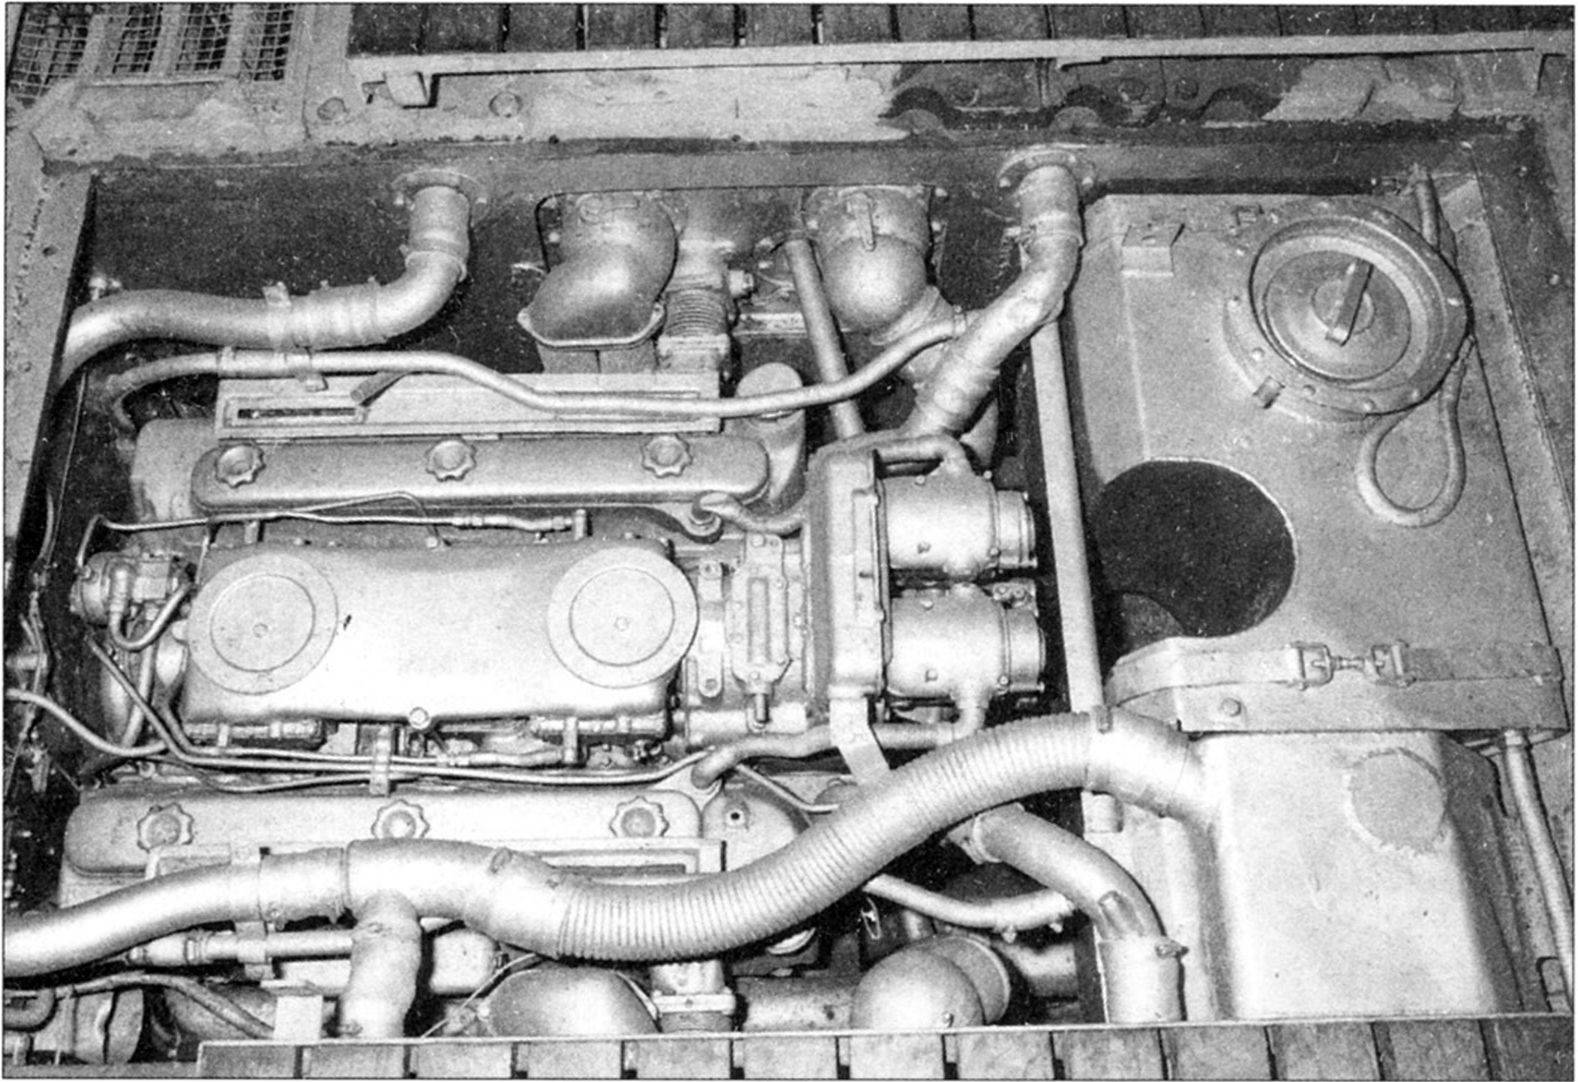 Jagdtiger engine view and wooden boards